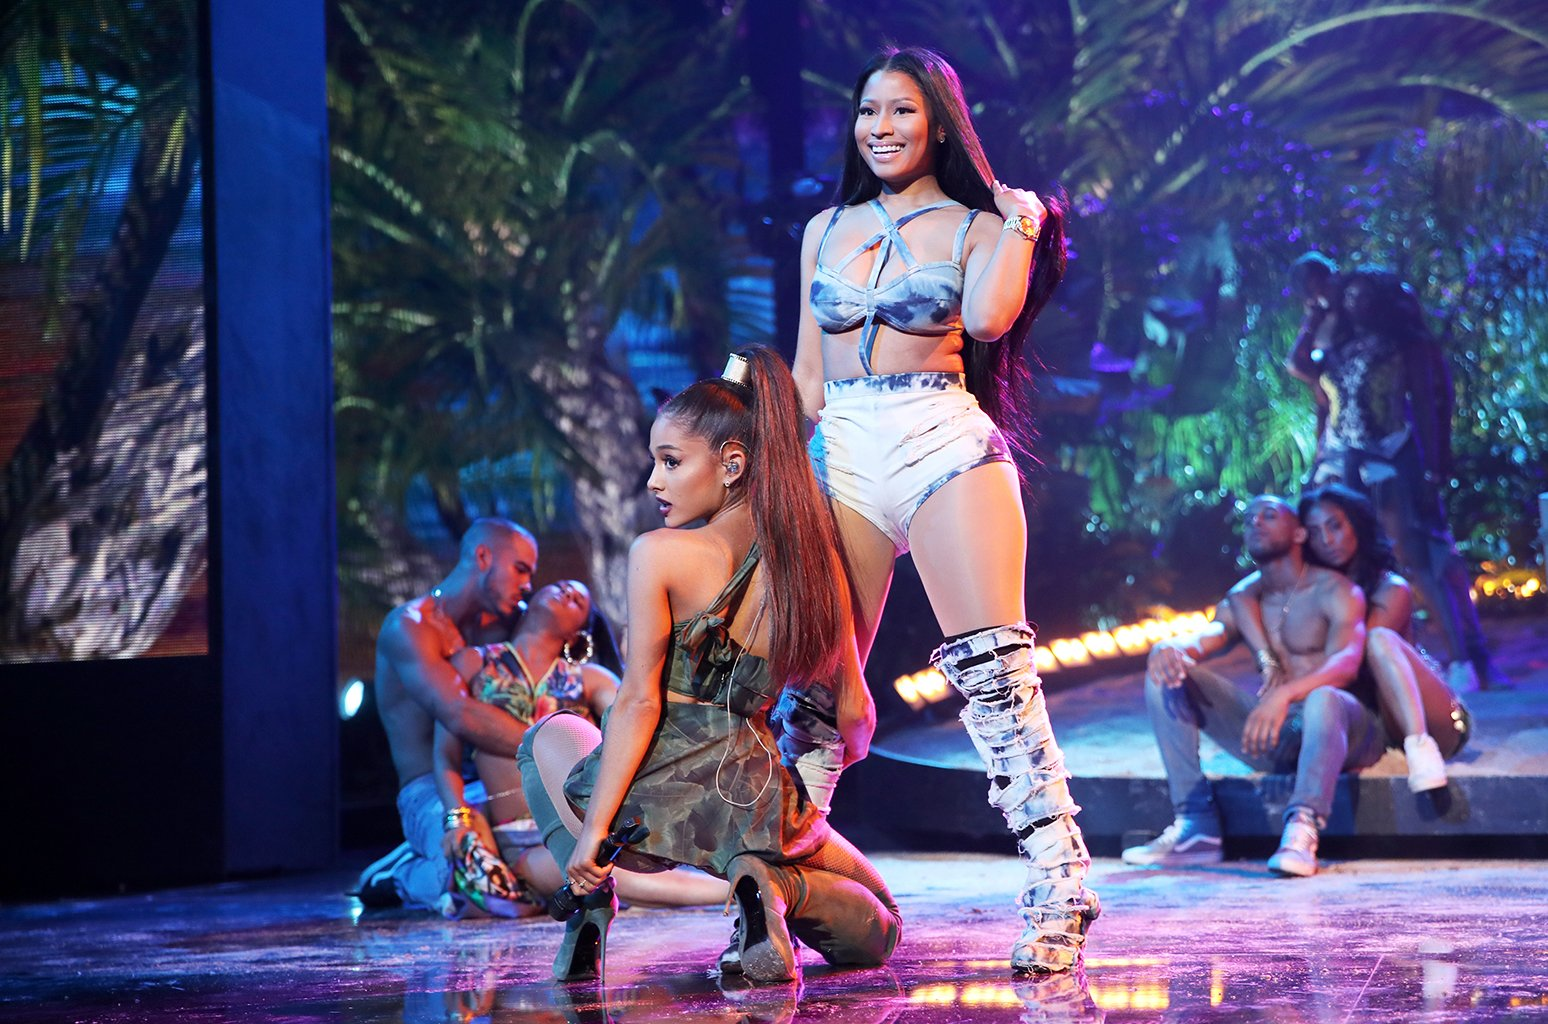 Nicki Minaj and Ariana Grande team up for sexy duet 'Bed' https://t.co/HDKM4HuLEm https://t.co/pErLdZeuyC